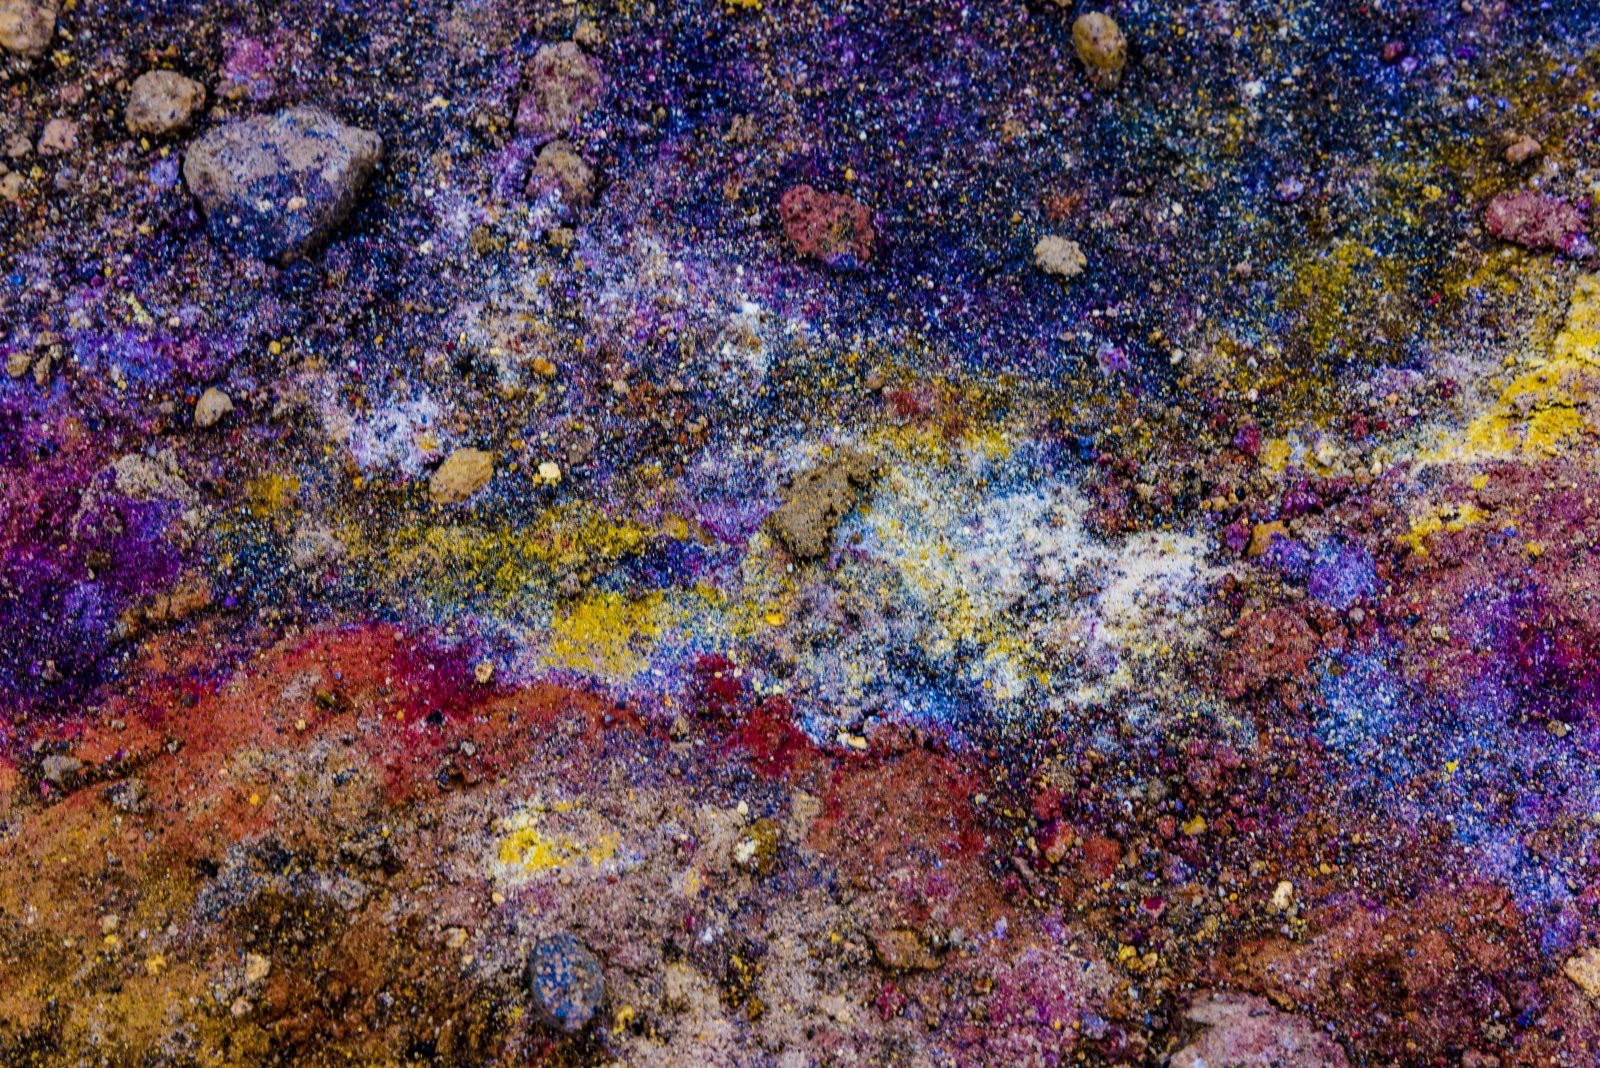 A Galaxy of Colors on a Patch of Land